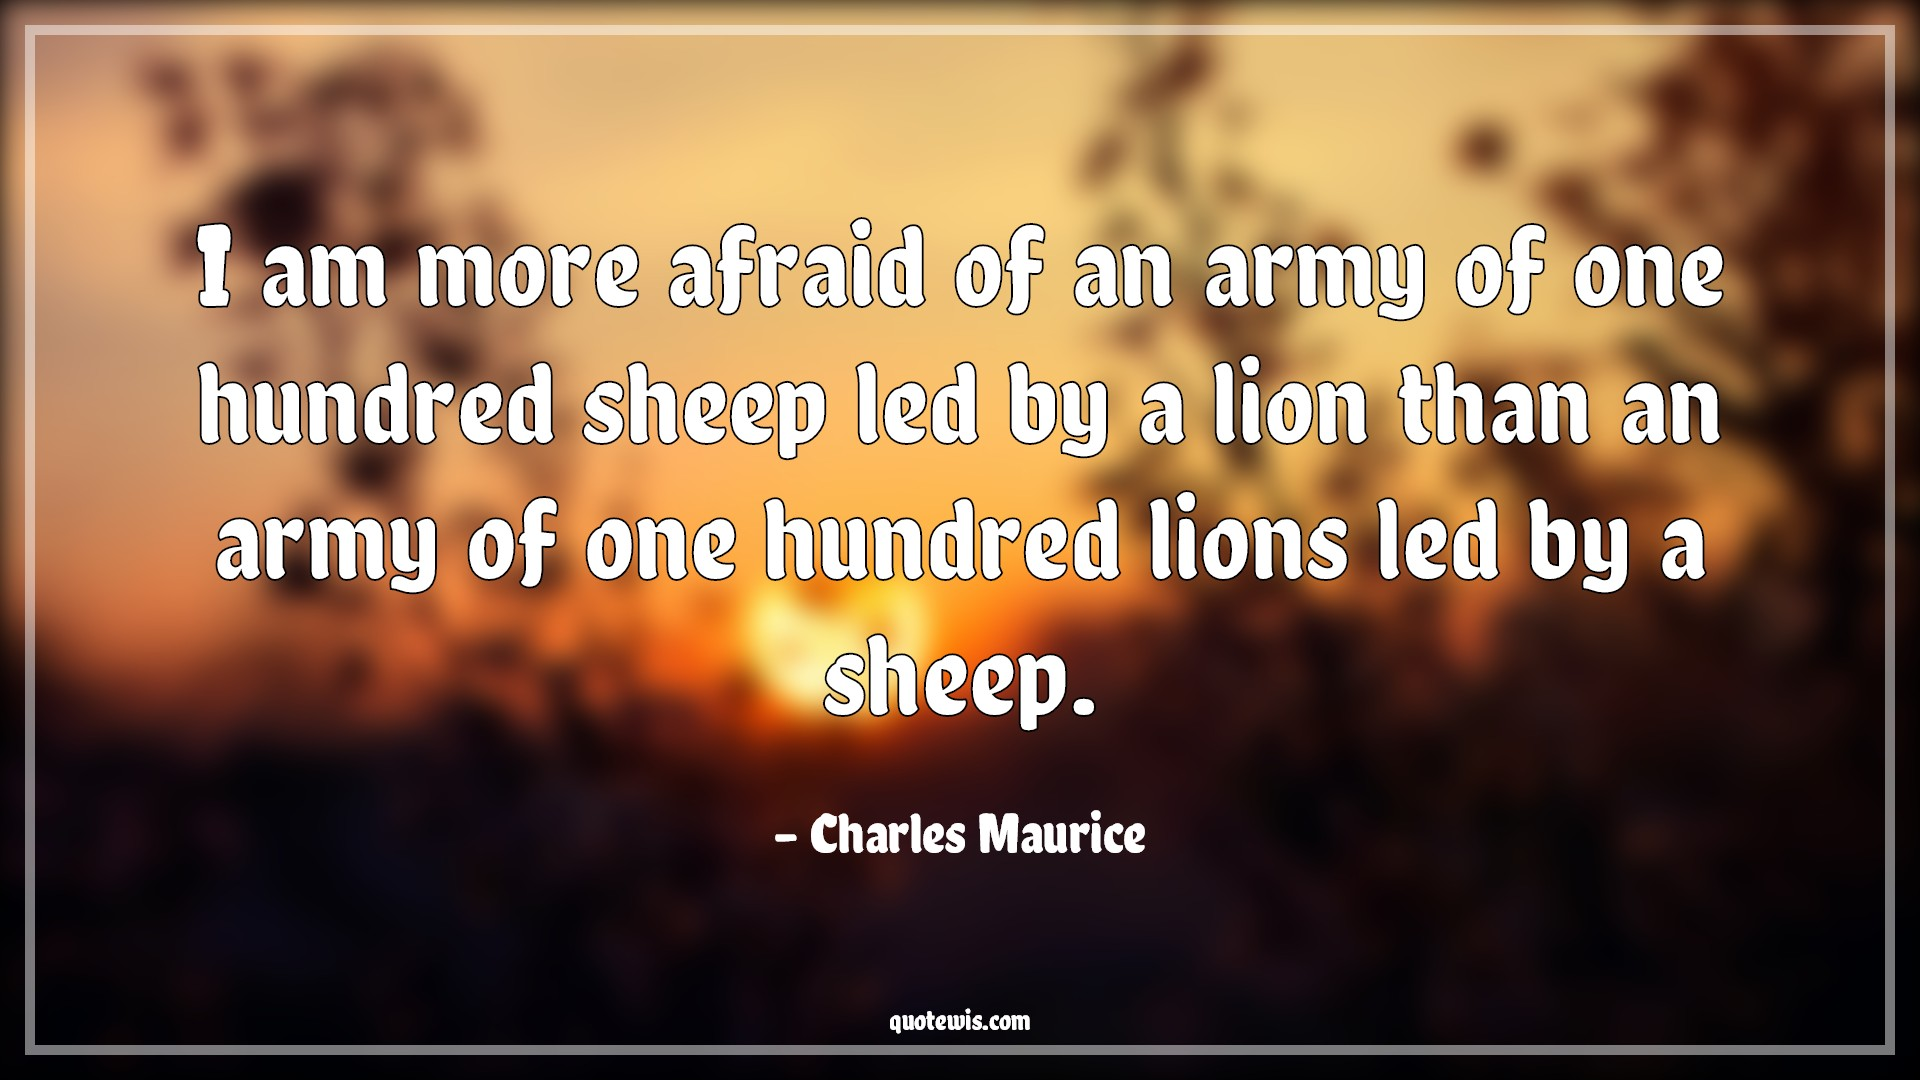 I am more afraid of an army of one hundred sheep led by a lion than an army of one hundred lions led by a sheep.